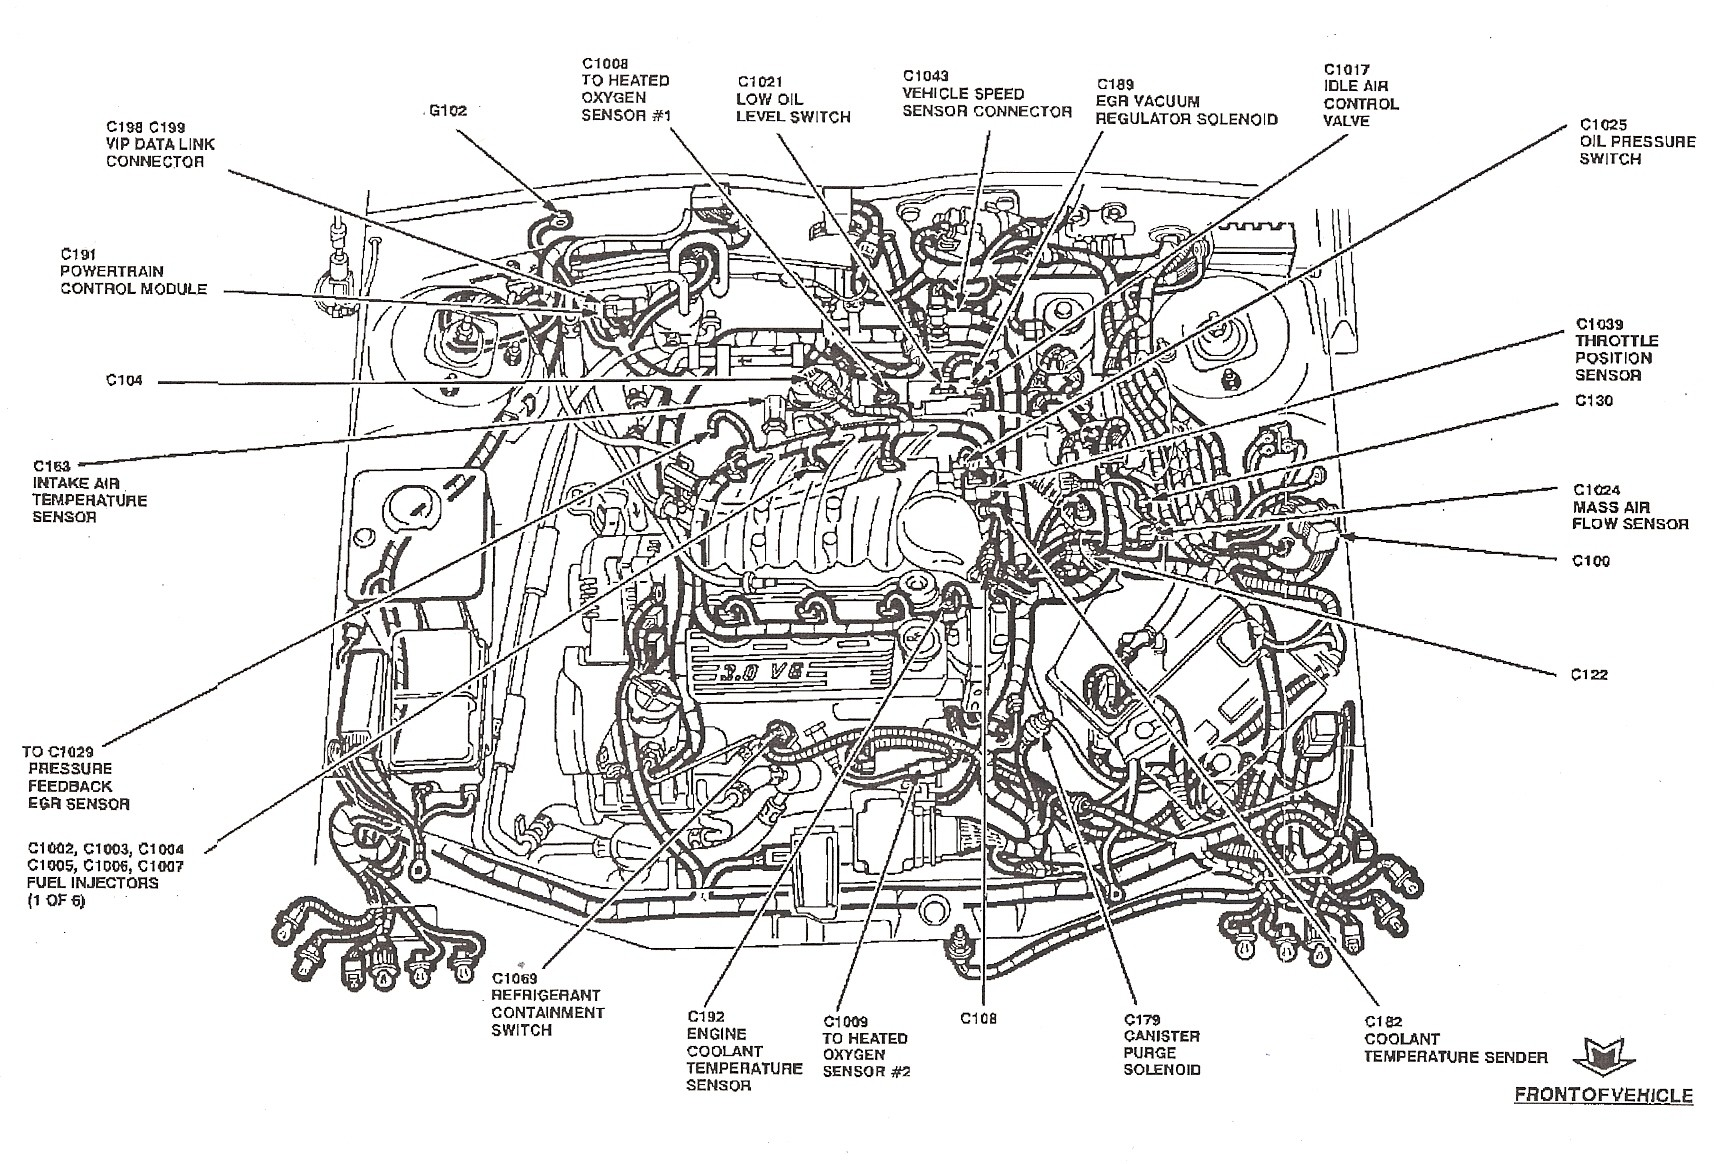 hight resolution of 2004 ford taurus engine diagram wiring diagram expert ford taurus 3 0 engine diagram